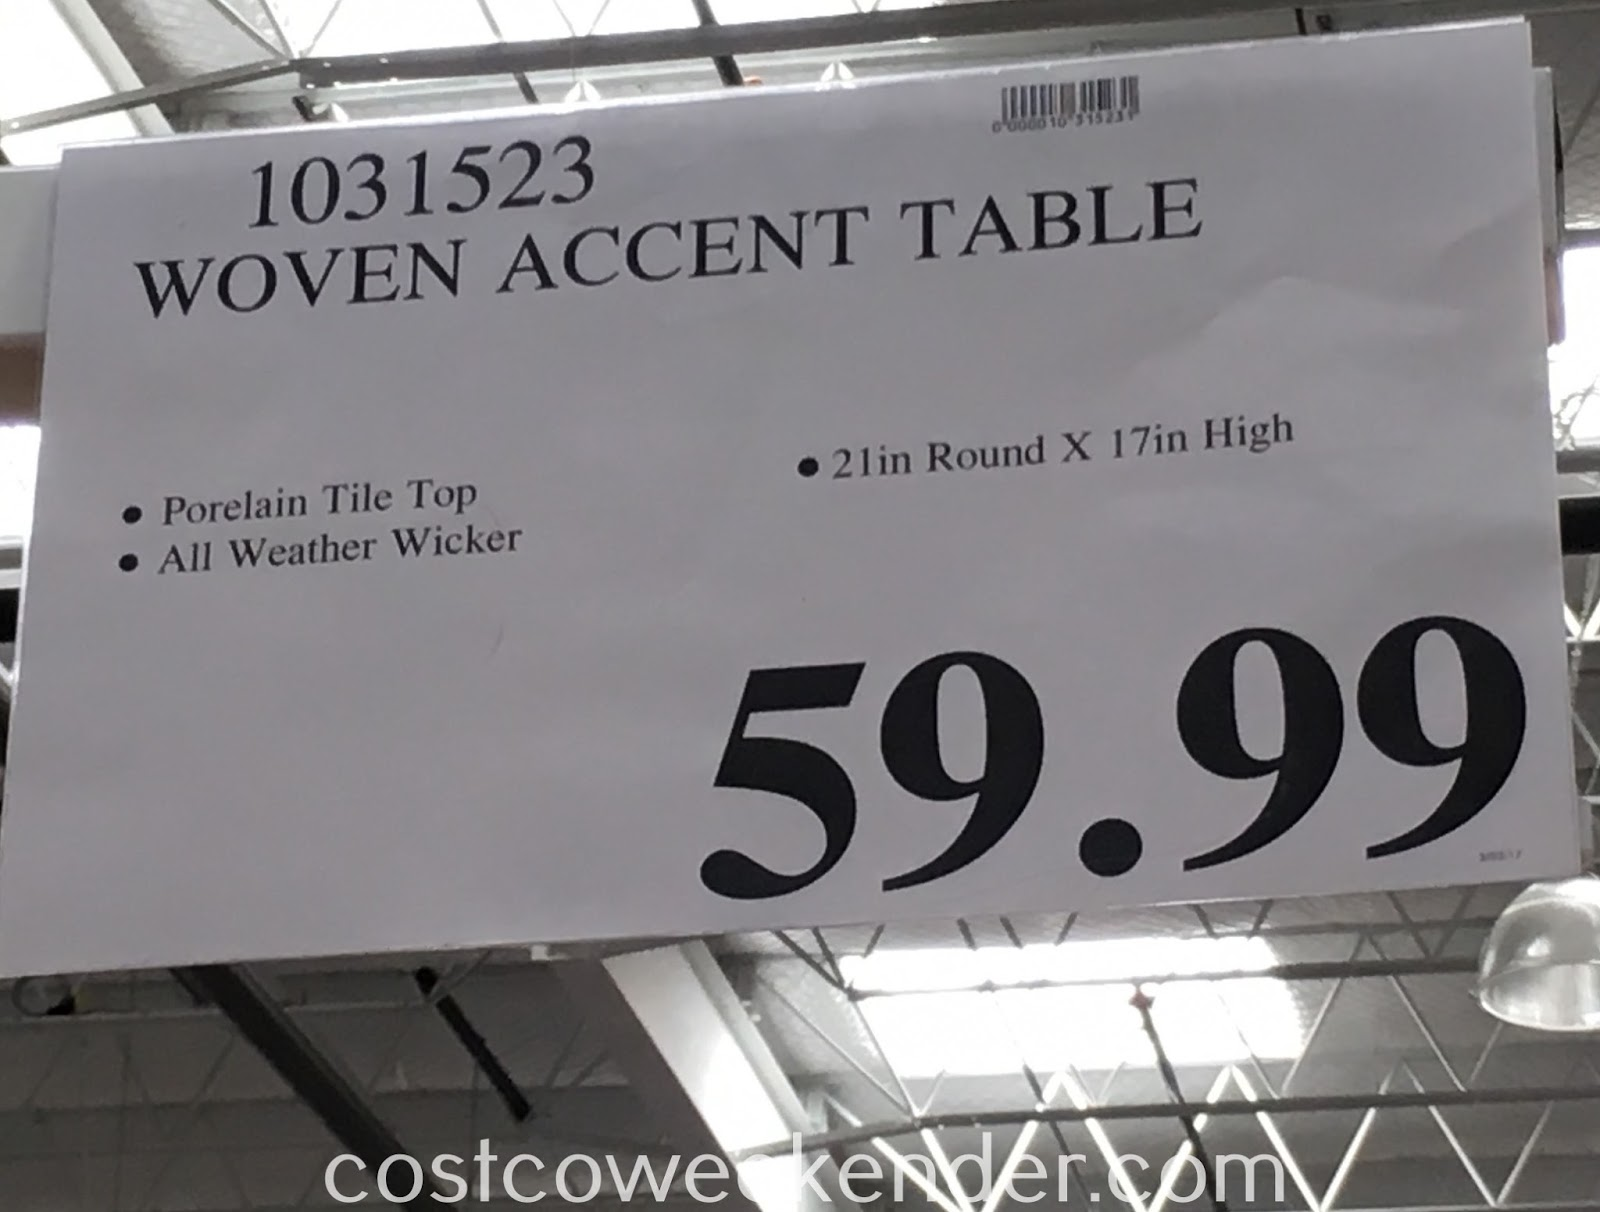 Deal for the Woven Accent Table at Costco